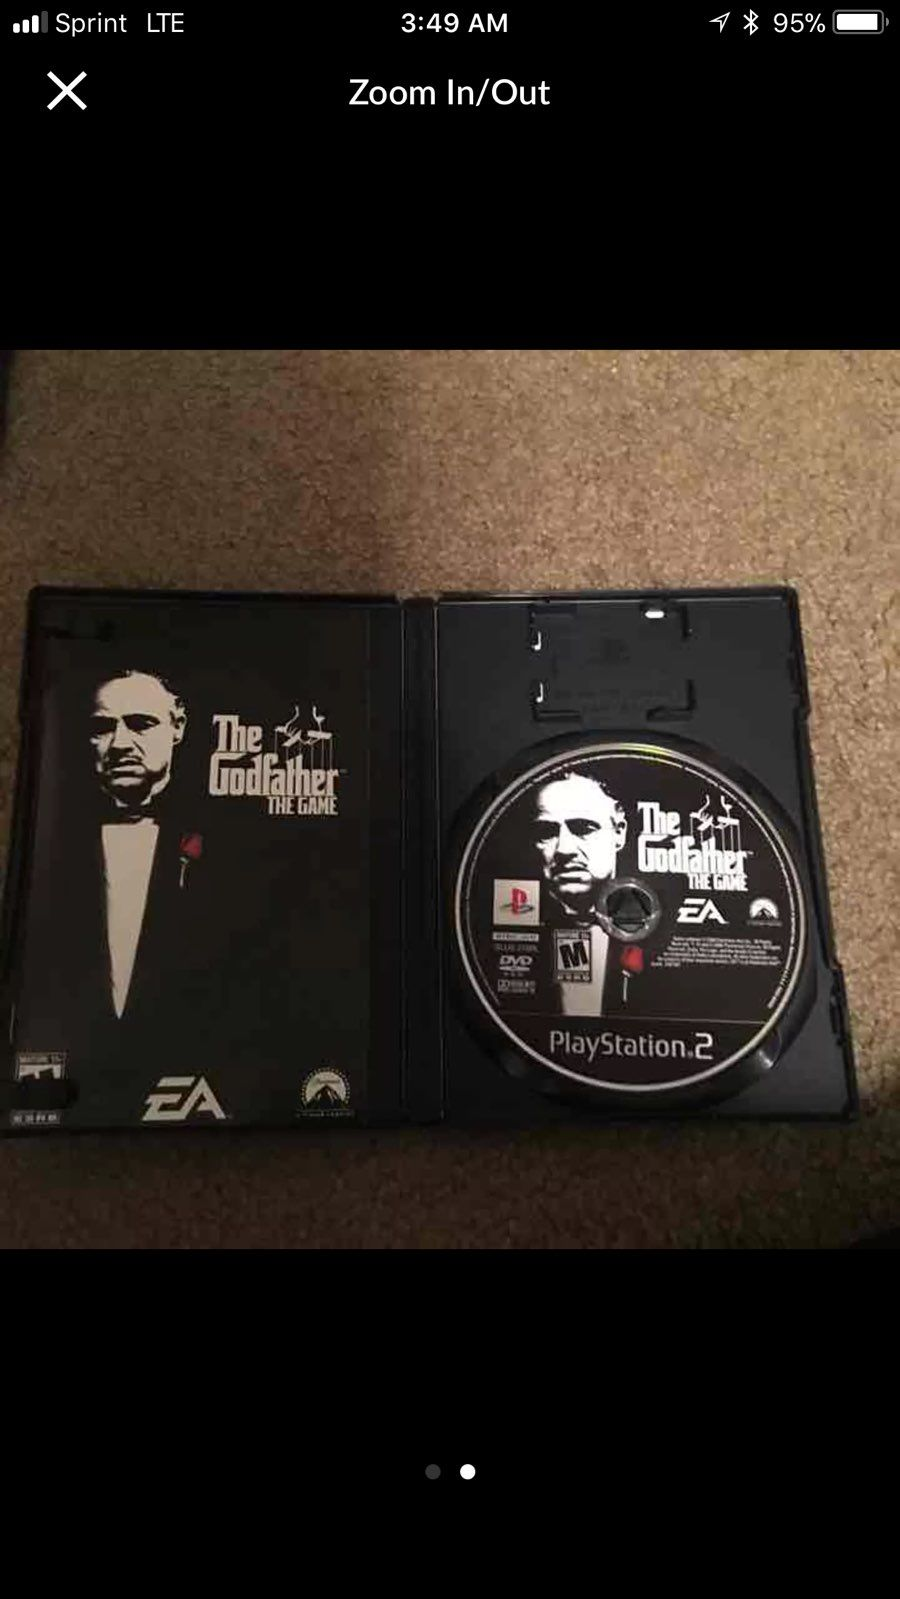 The Godfather The Game Playstation 2 PS2